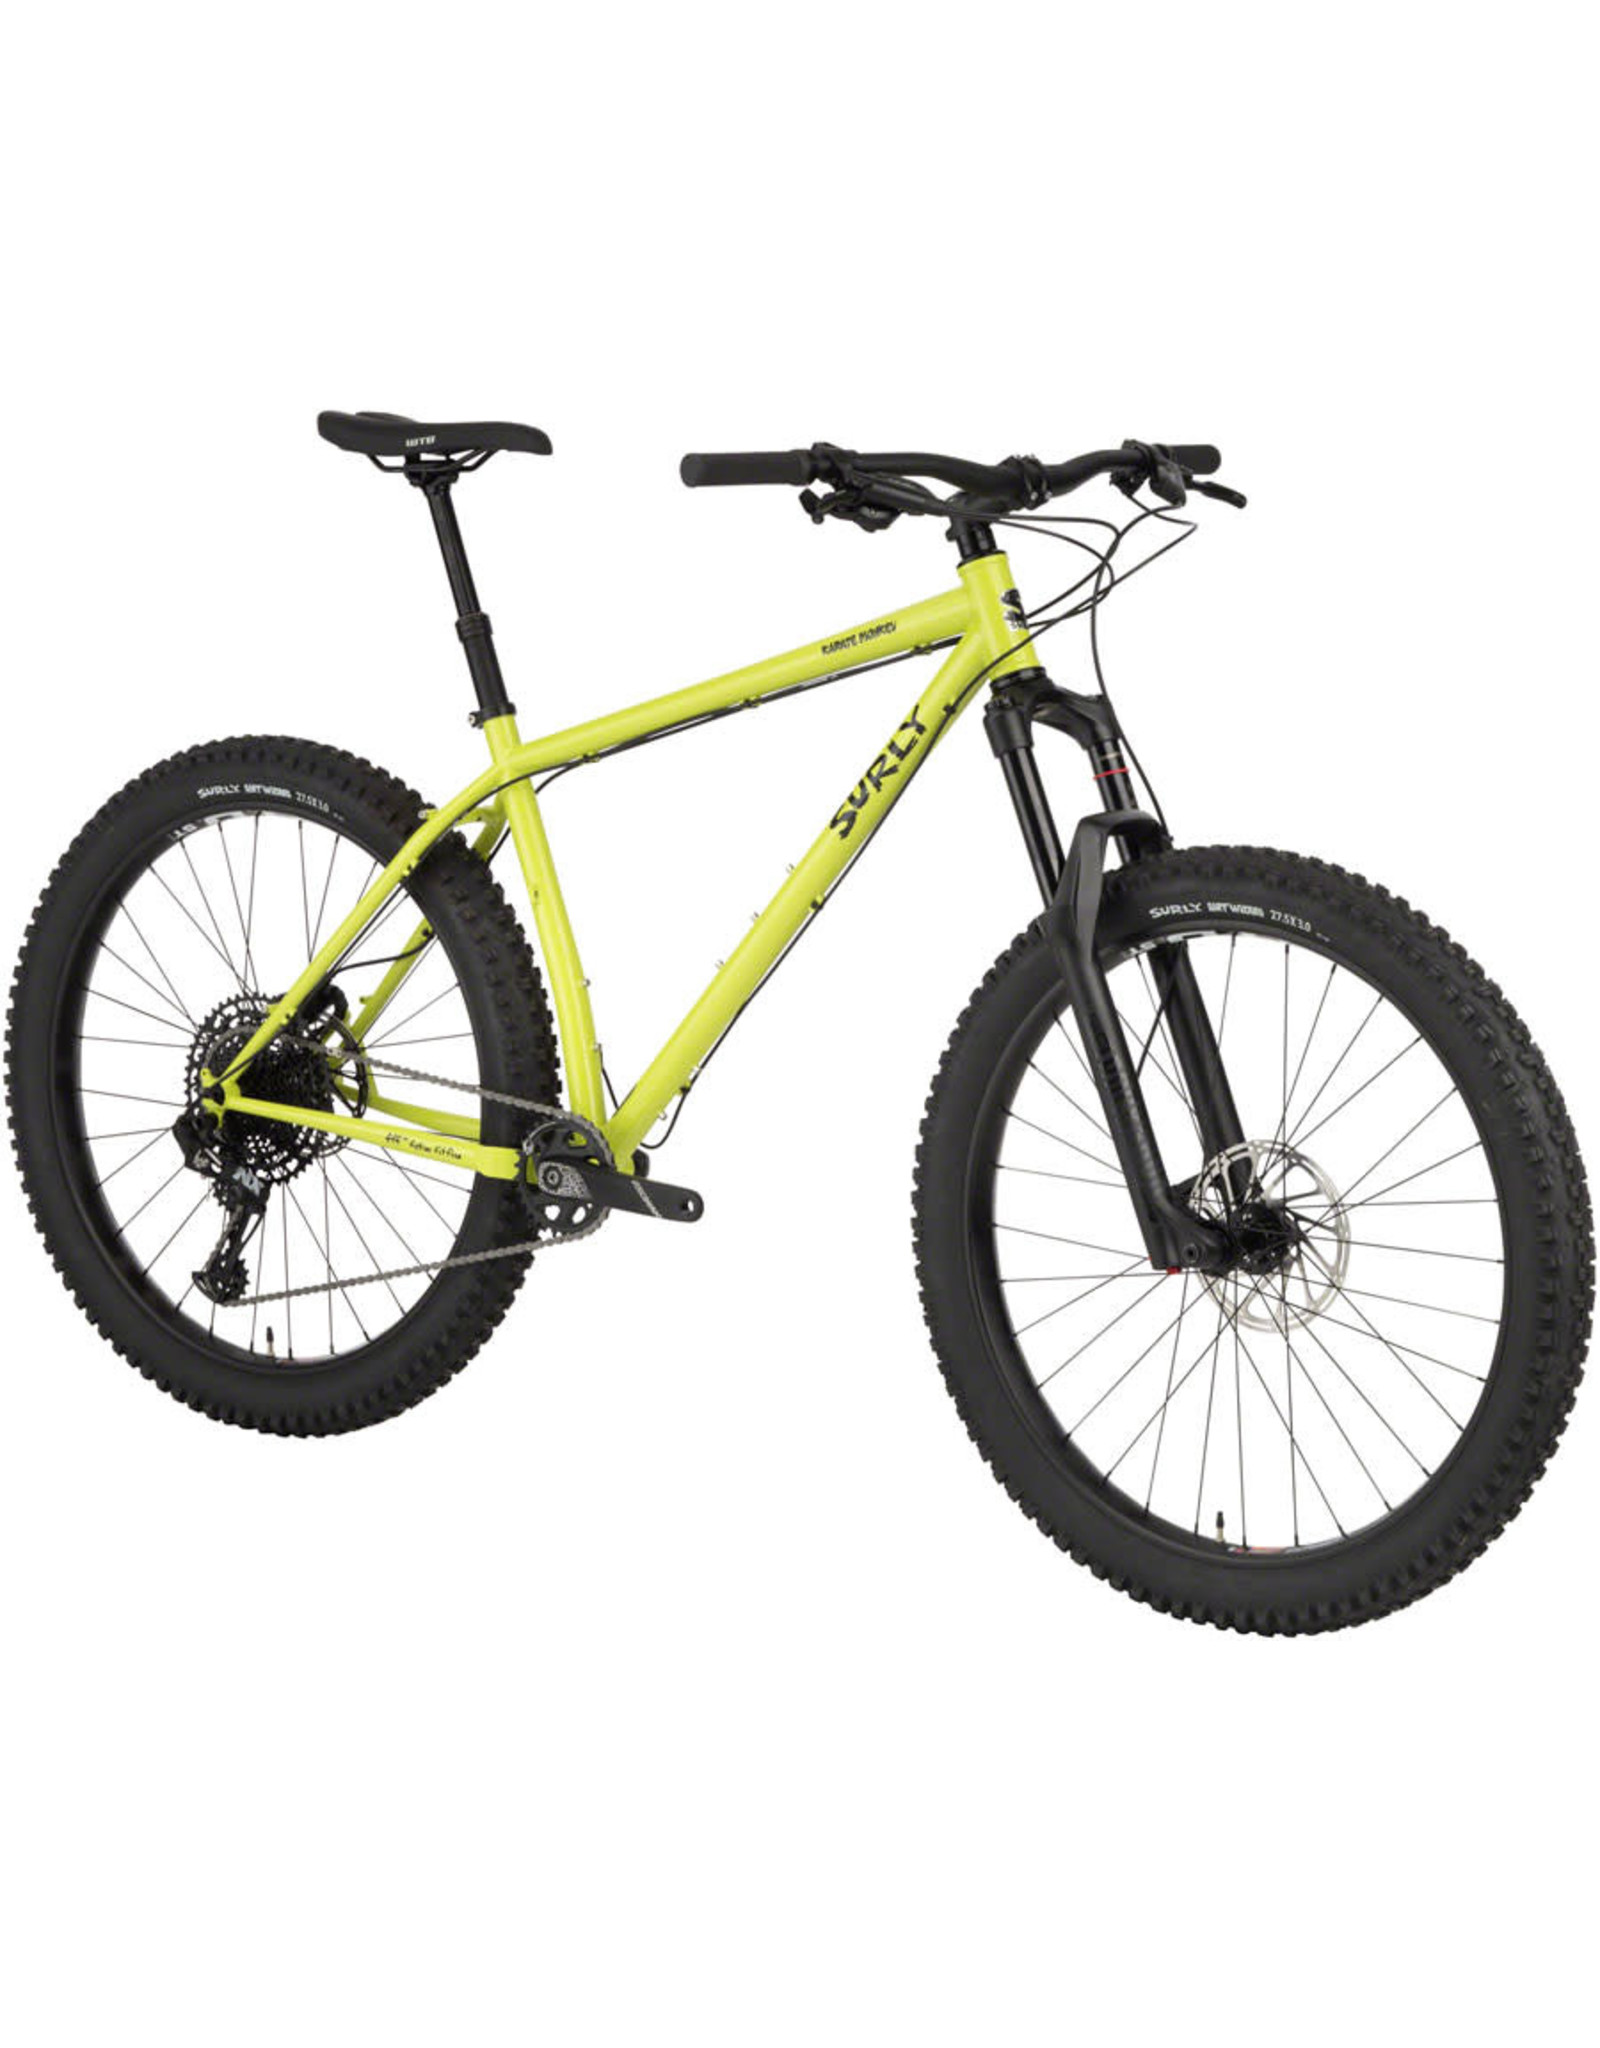 Surly Surly Karate Monkey 27.5+ Front Suspension NX Eagle